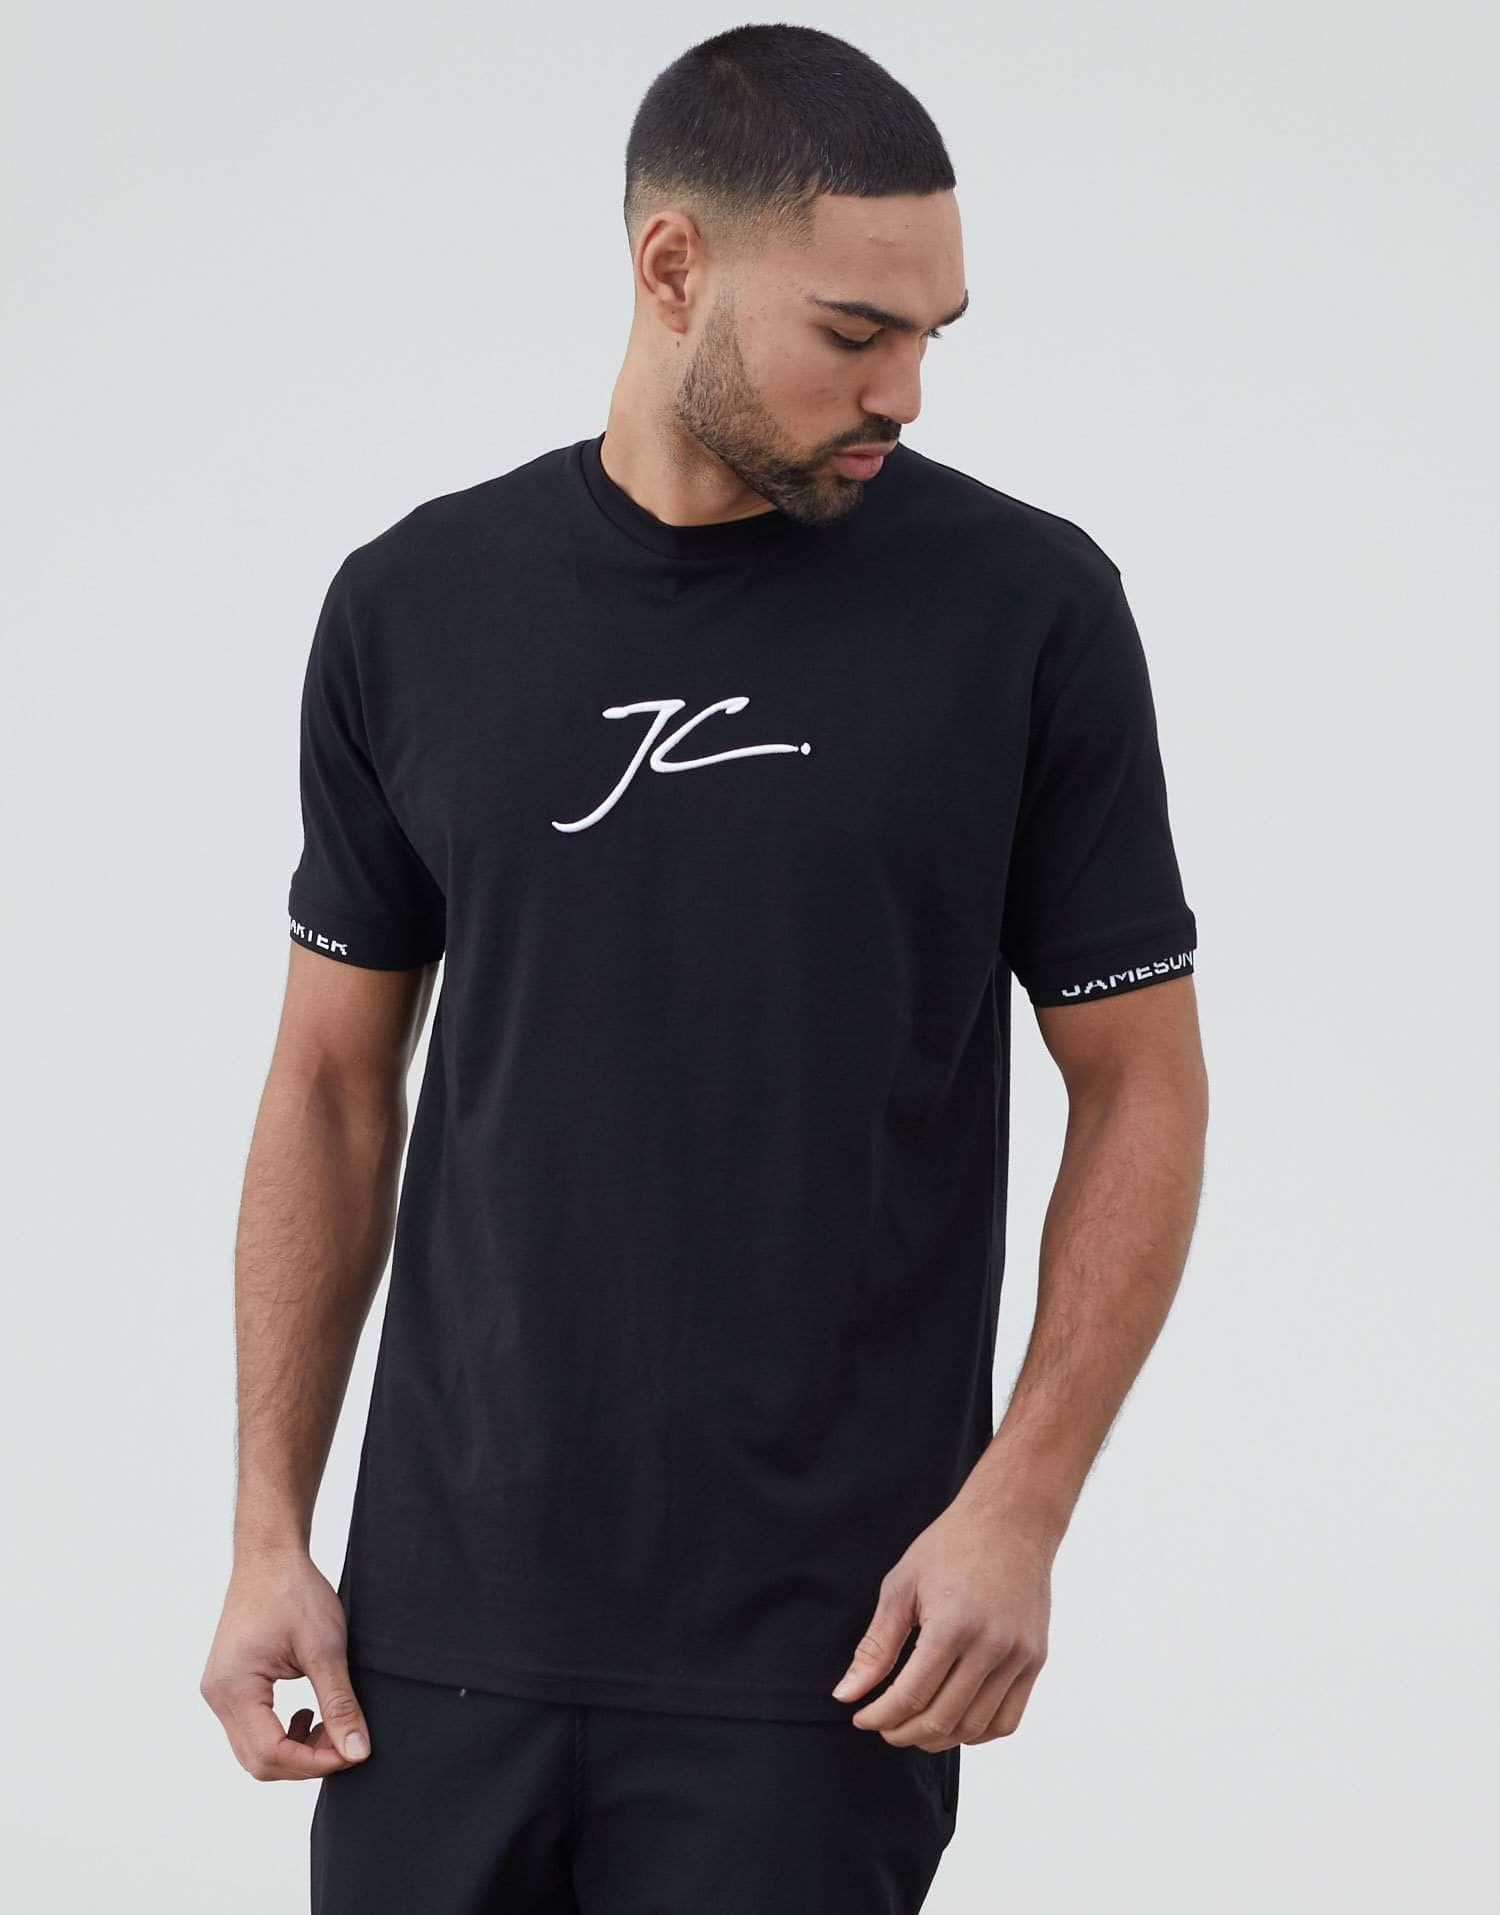 Jameson Carter T-Shirts, sale Alders T Shirt - Black